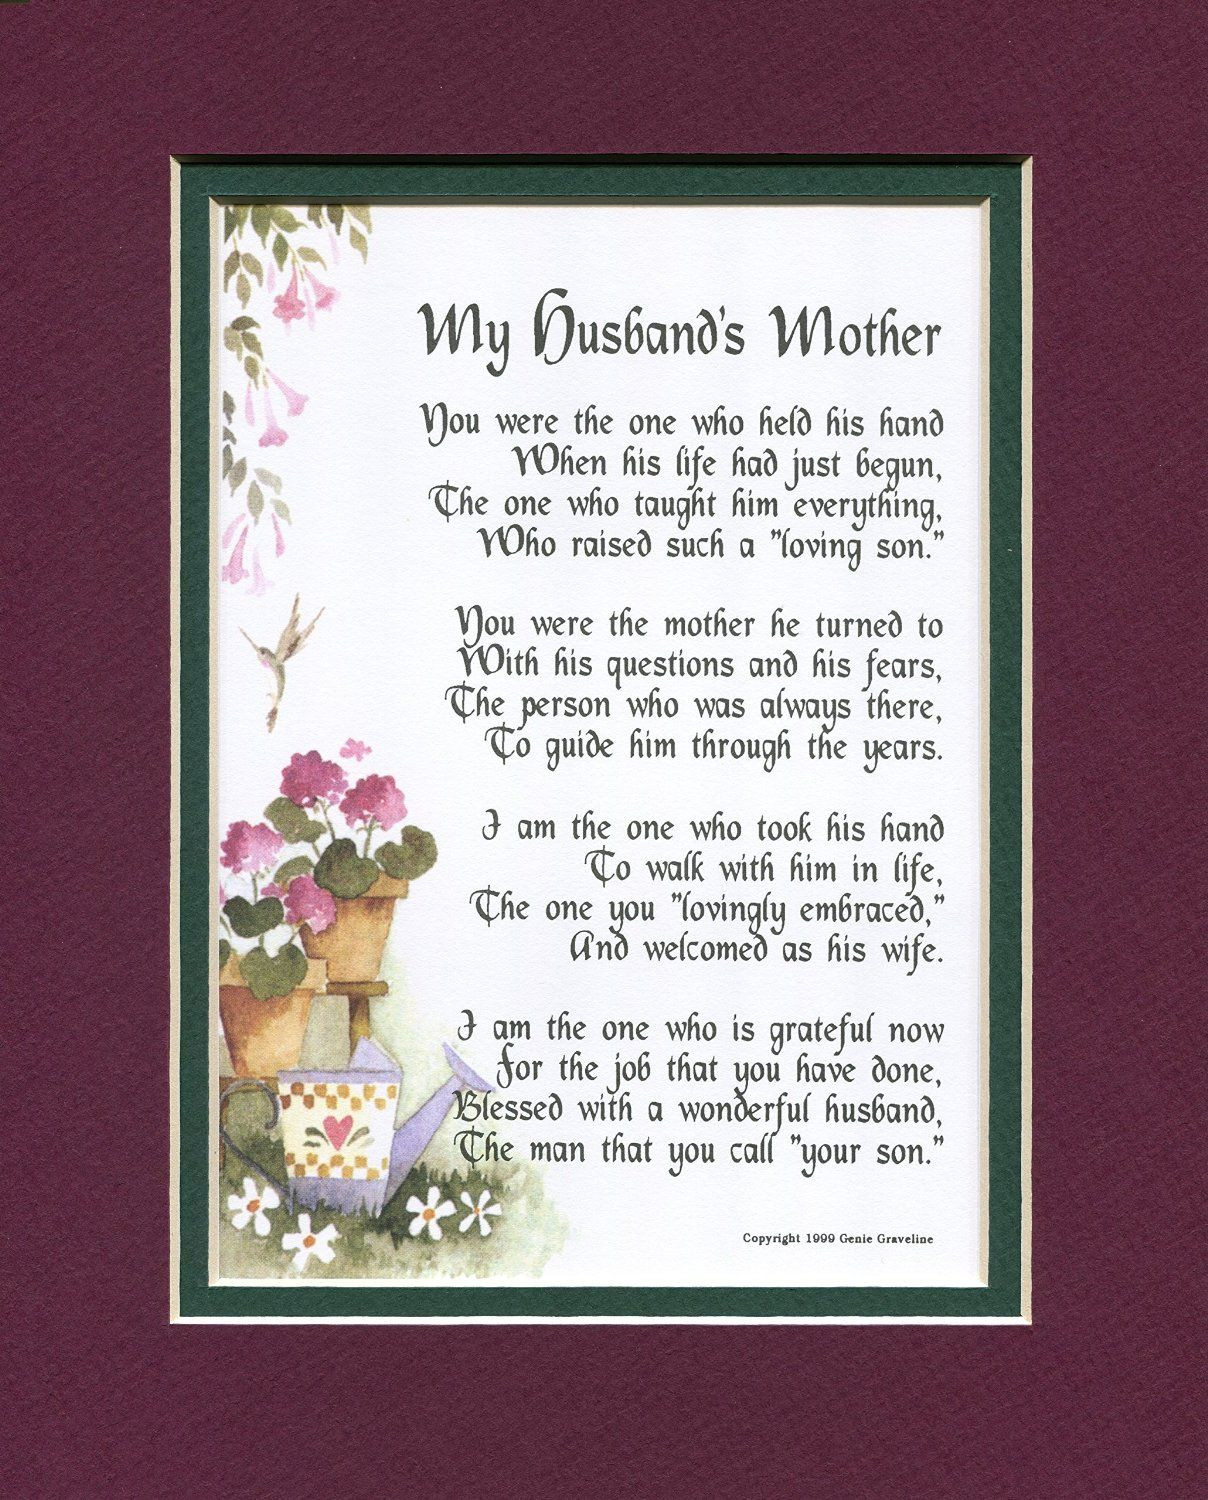 A Gift For Mother In Law Touching Poem Double Matted Burgundy Over Green And Enhanced With Watercolor Graphics Mothers Day